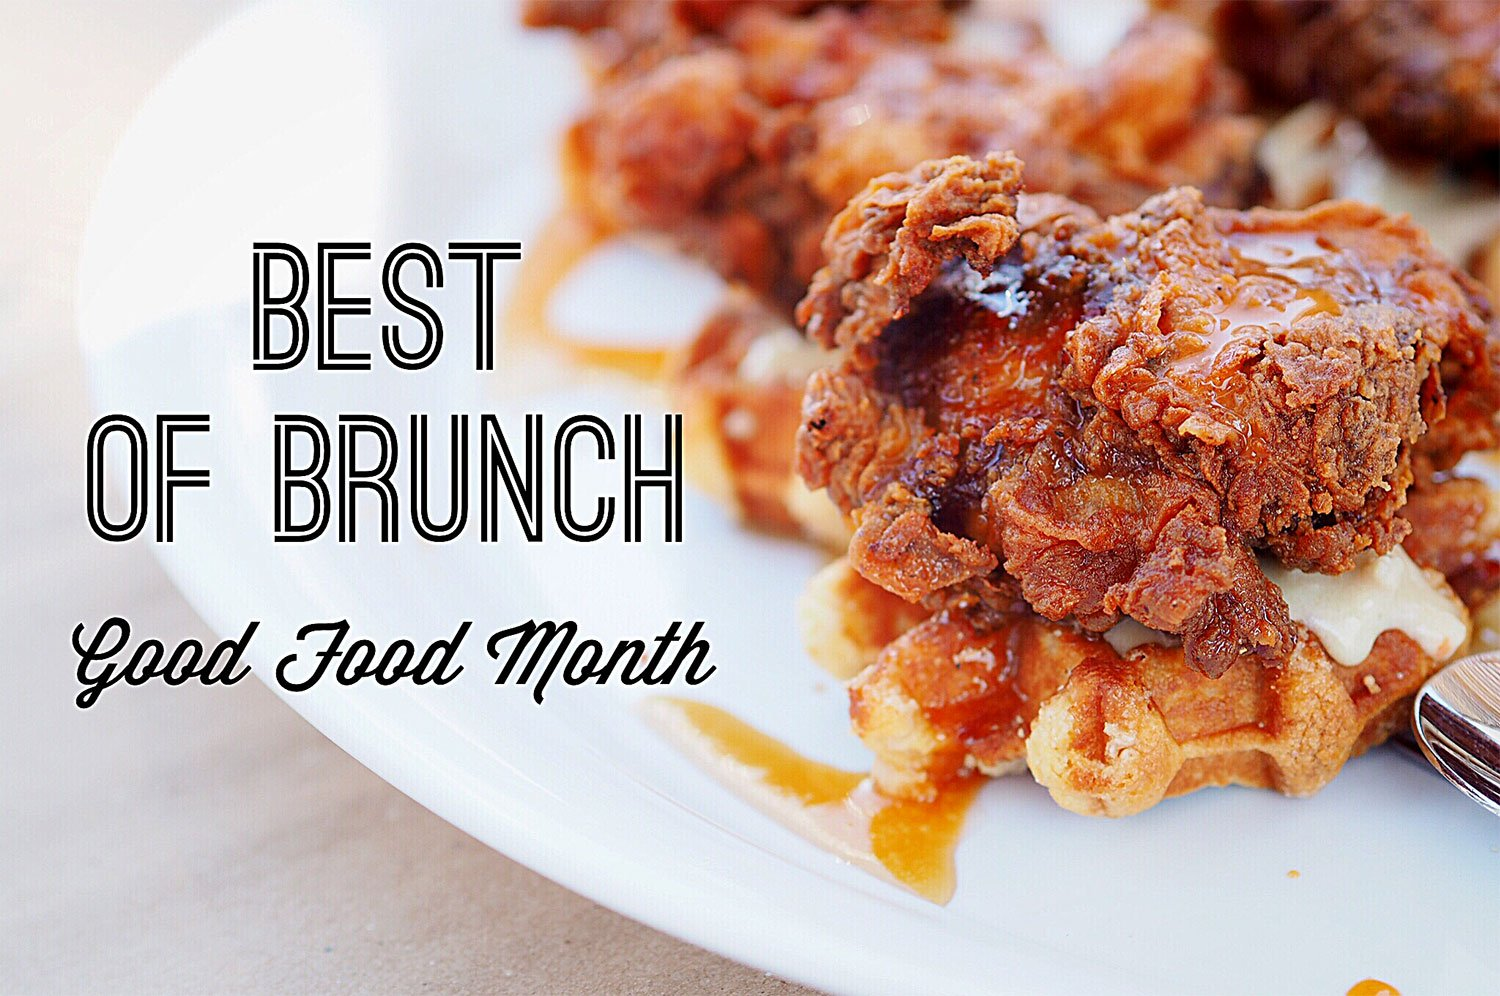 Sydney Food Blog Review of Best of Brunch, SMH Good Food Month 2015